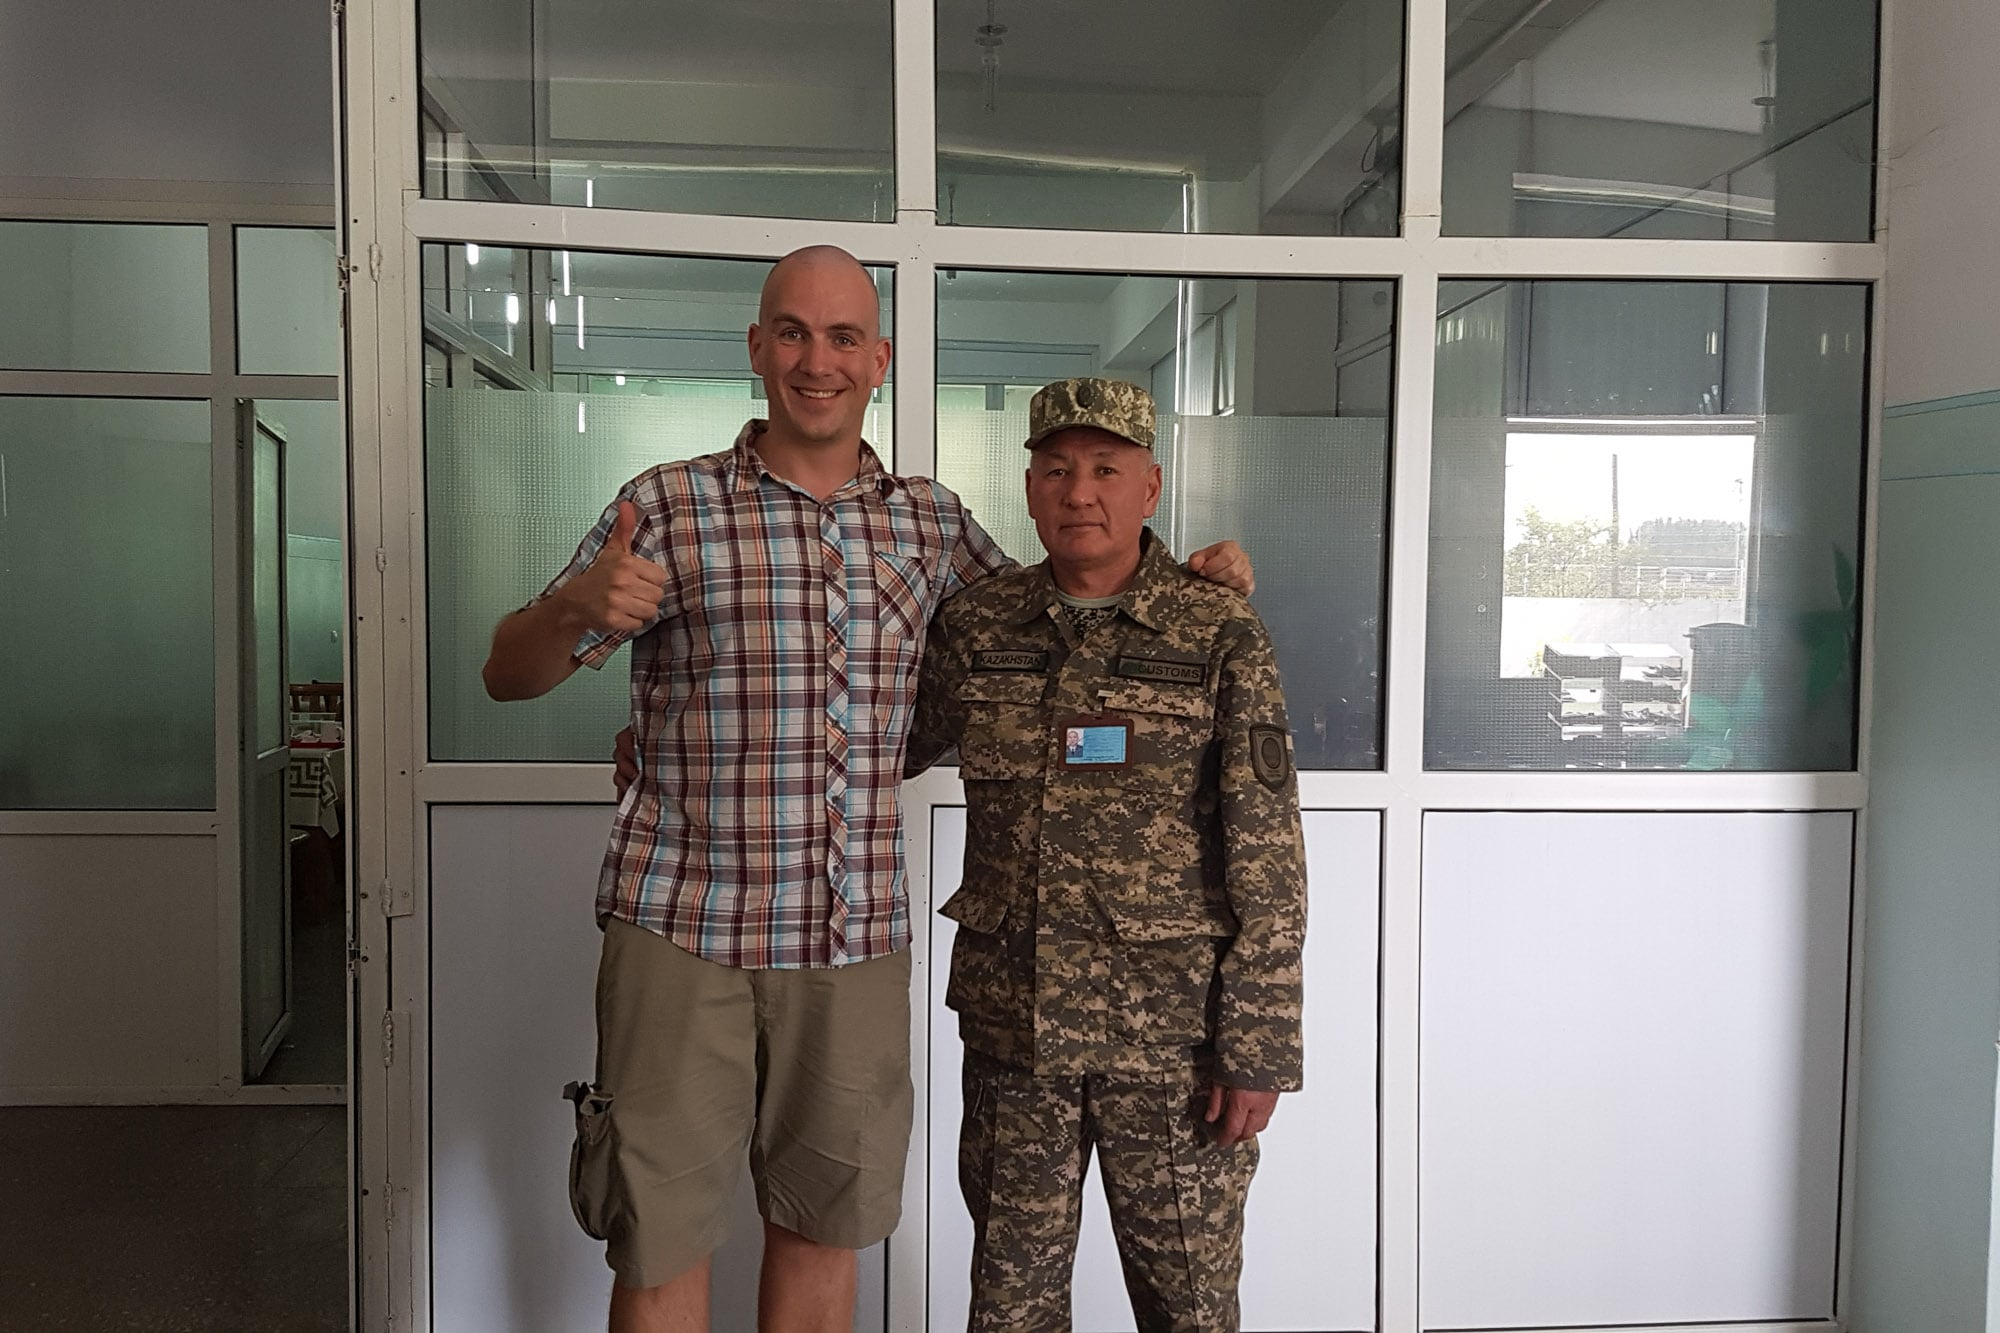 Marad invited me to lunch on the Kazakh border